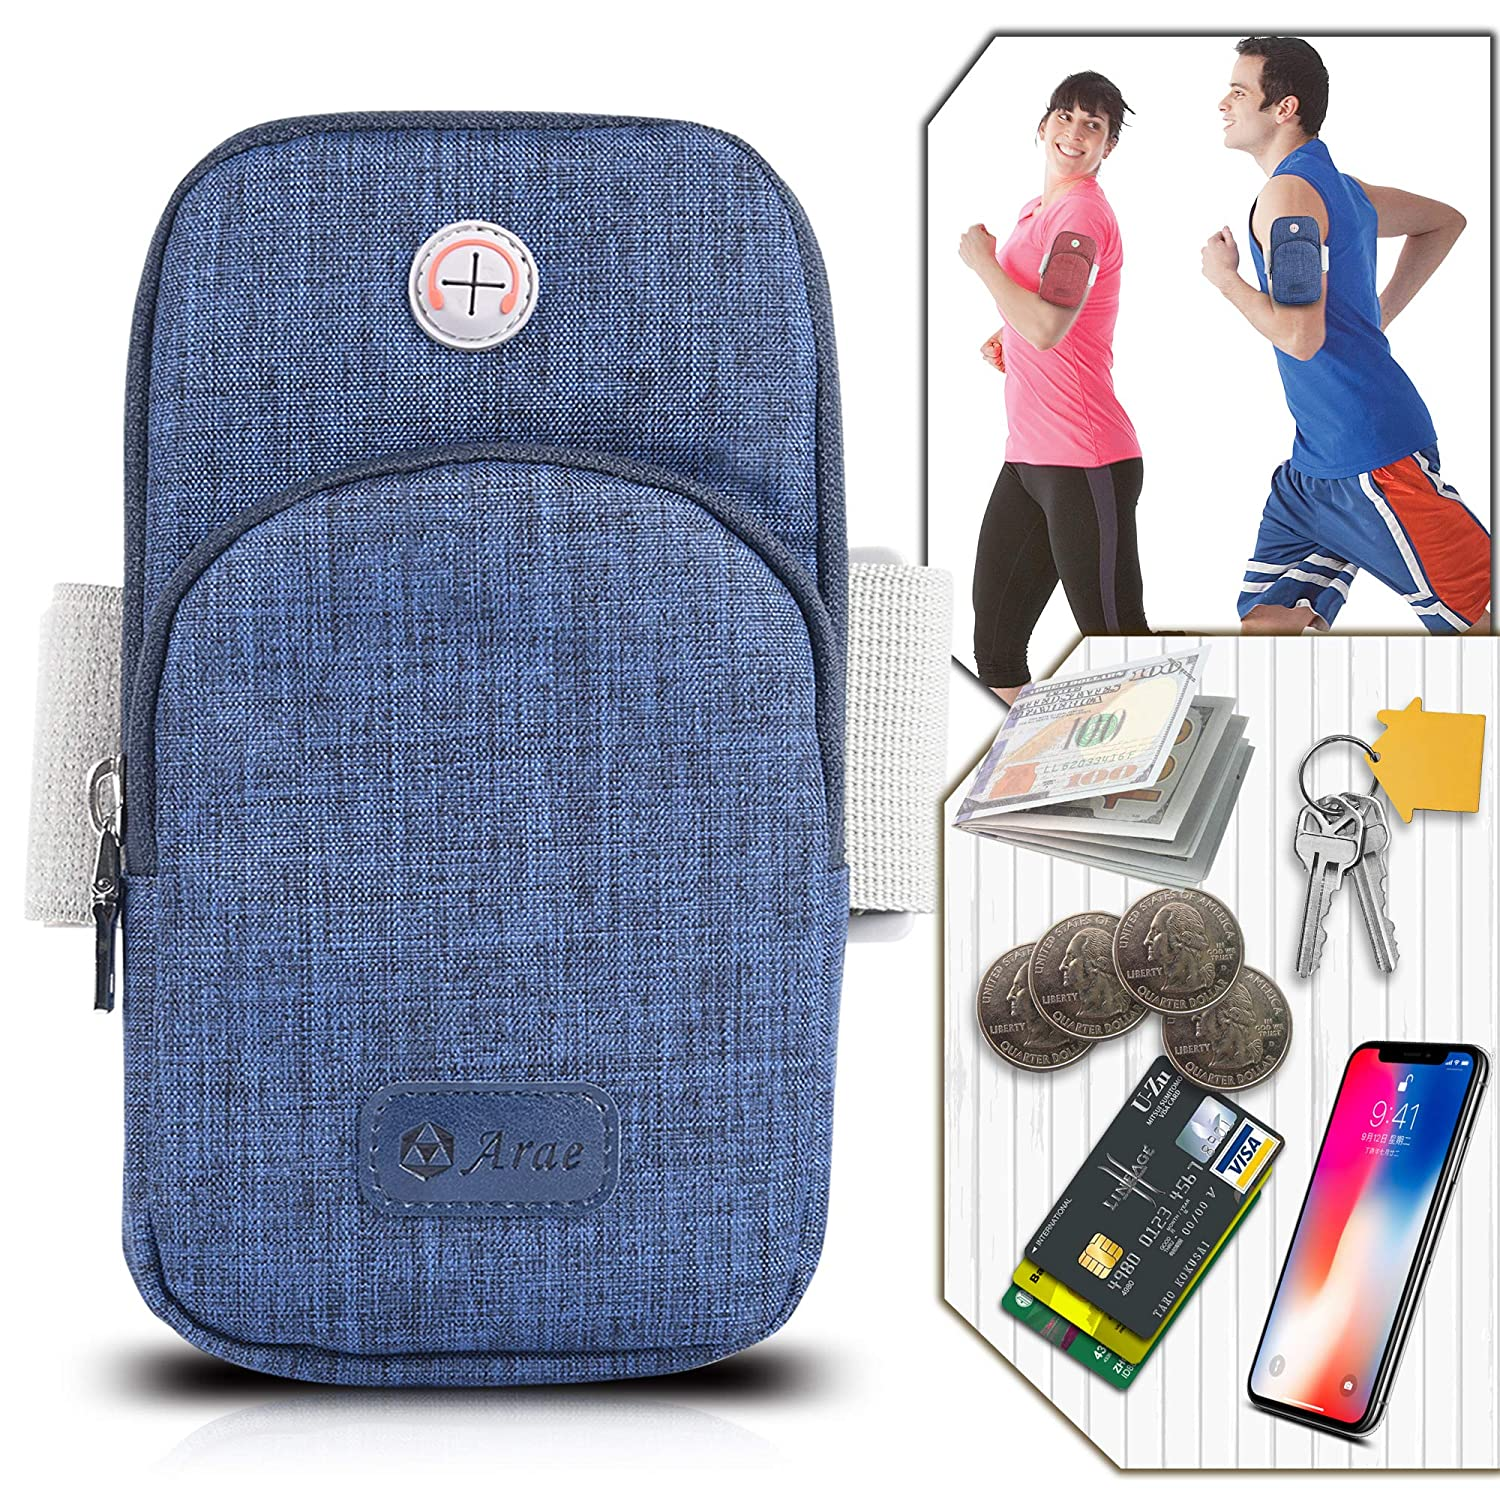 With Earphone Hole Sport Jogging Cycling Running Adjustable Cover Wallet Breathable Running Gym Arm Bag